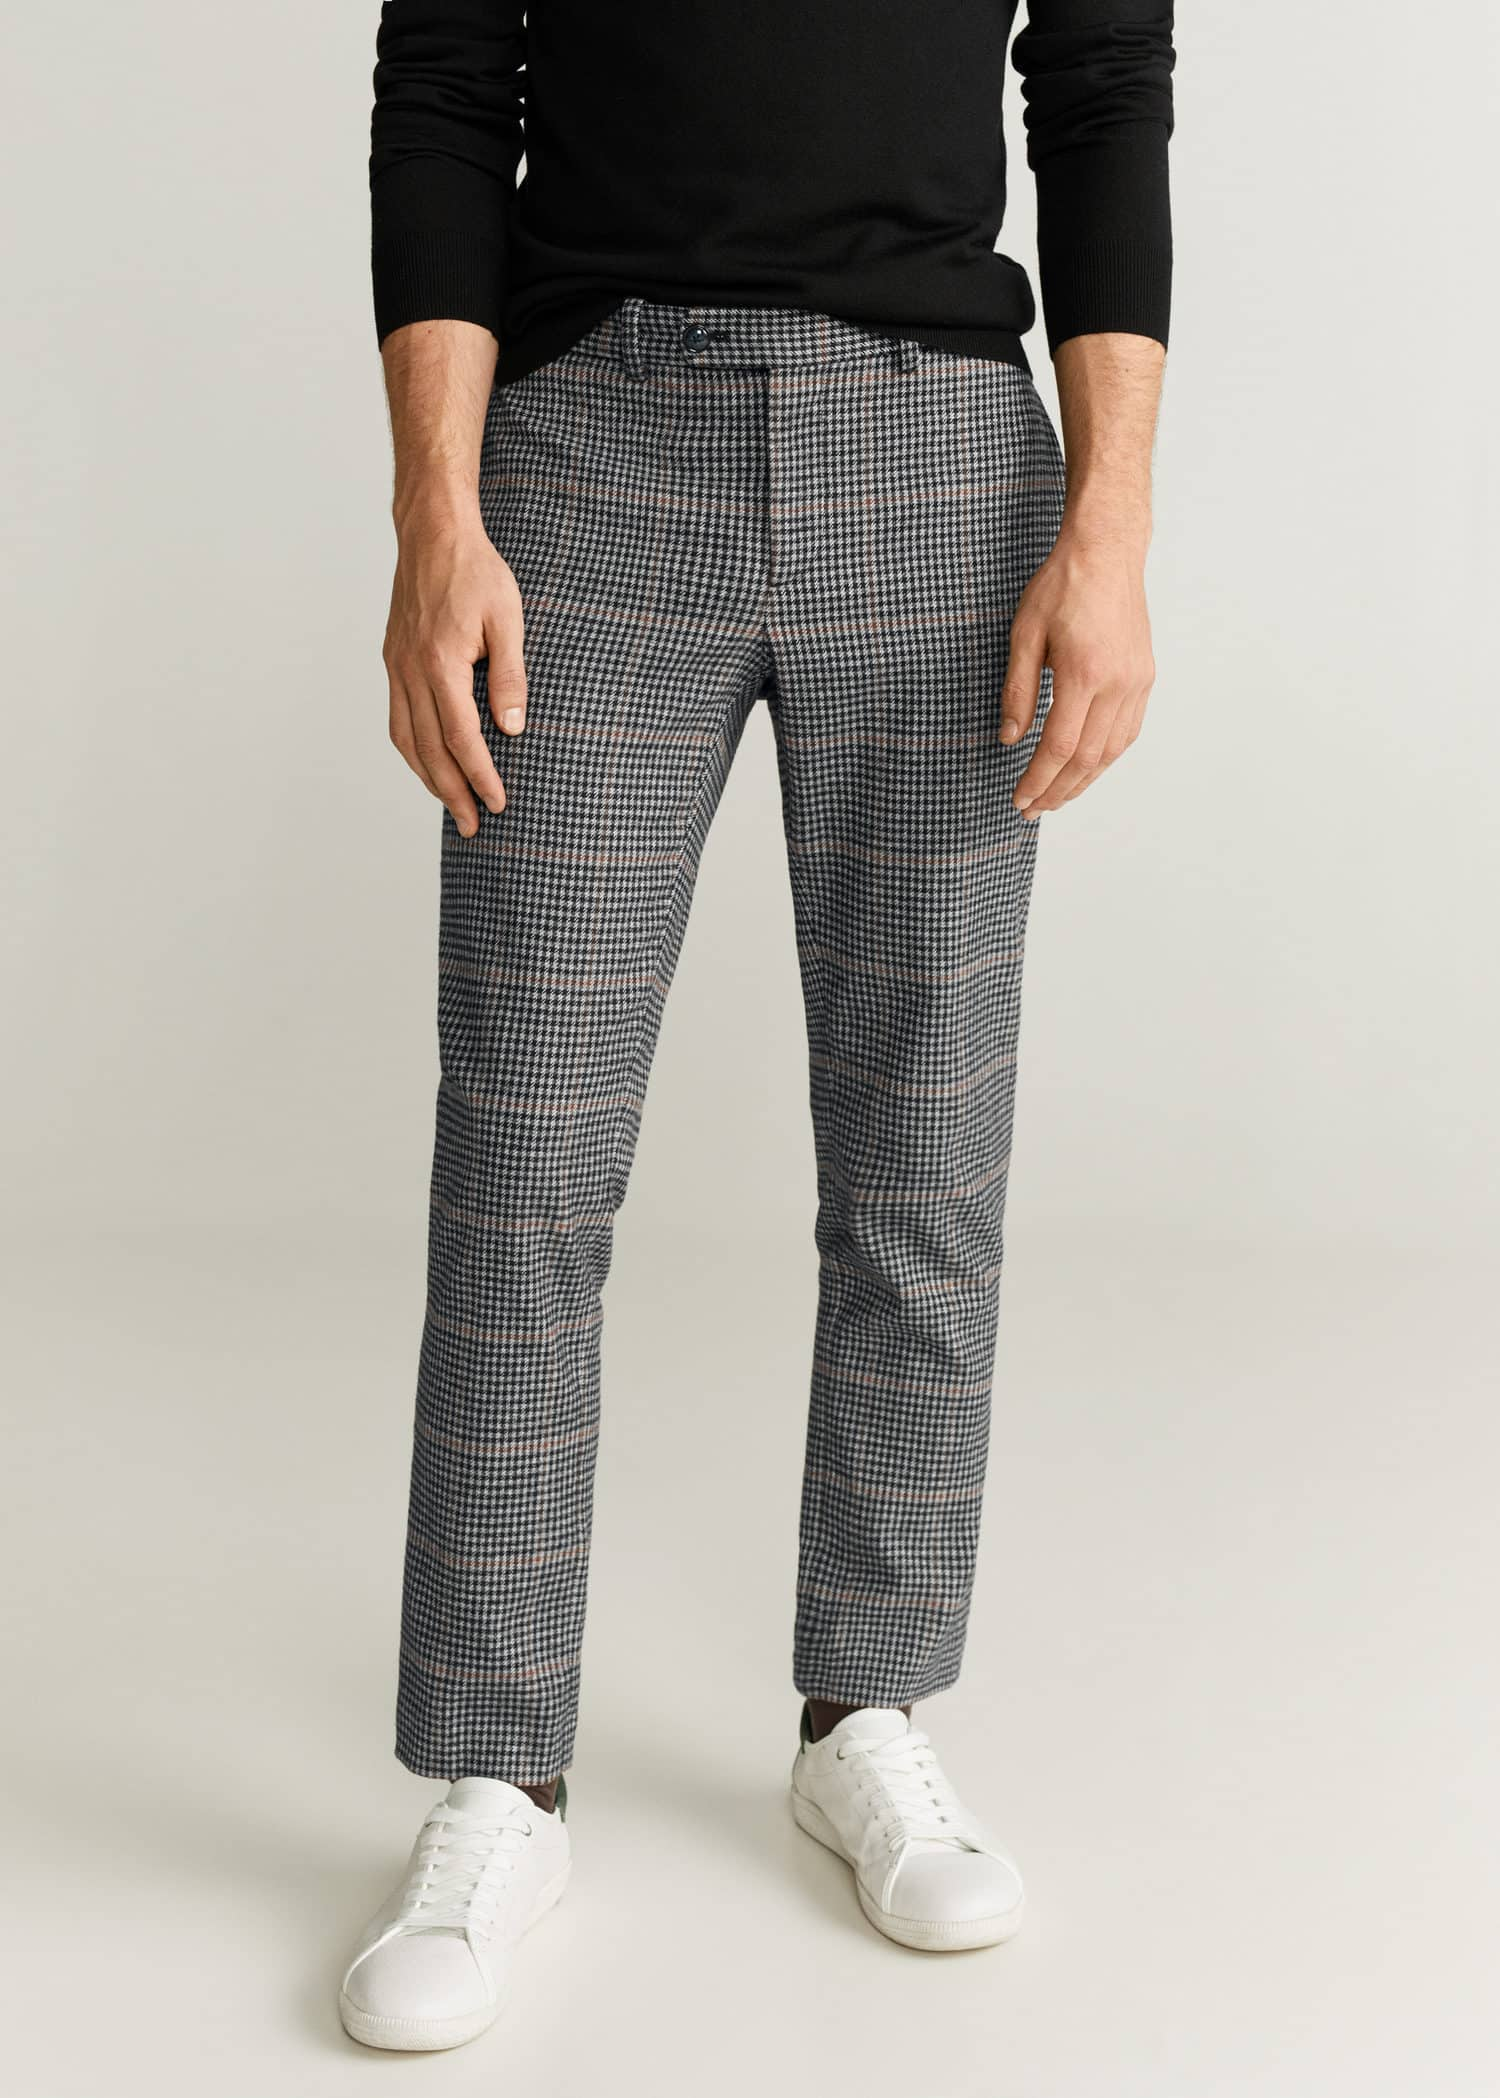 Mission Houndstooth Pant